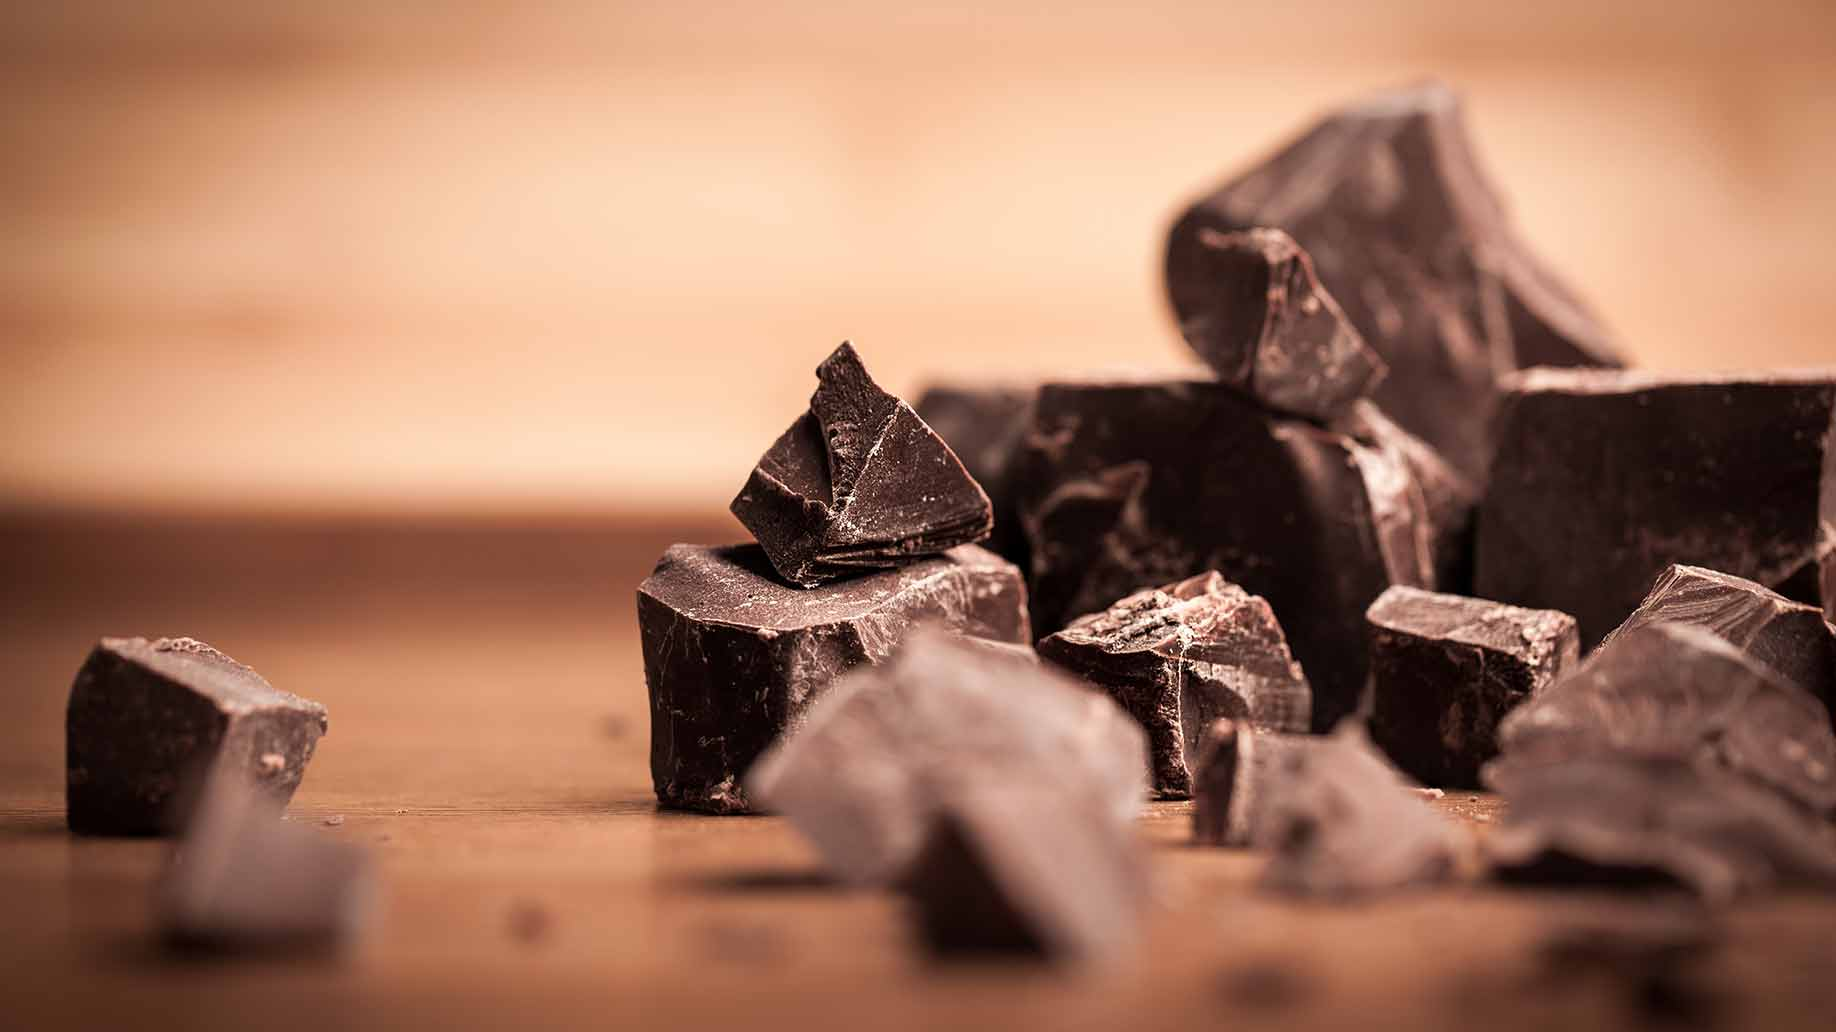 dark chocolate health benefits antioxidants anti-inflammatory flavonoids